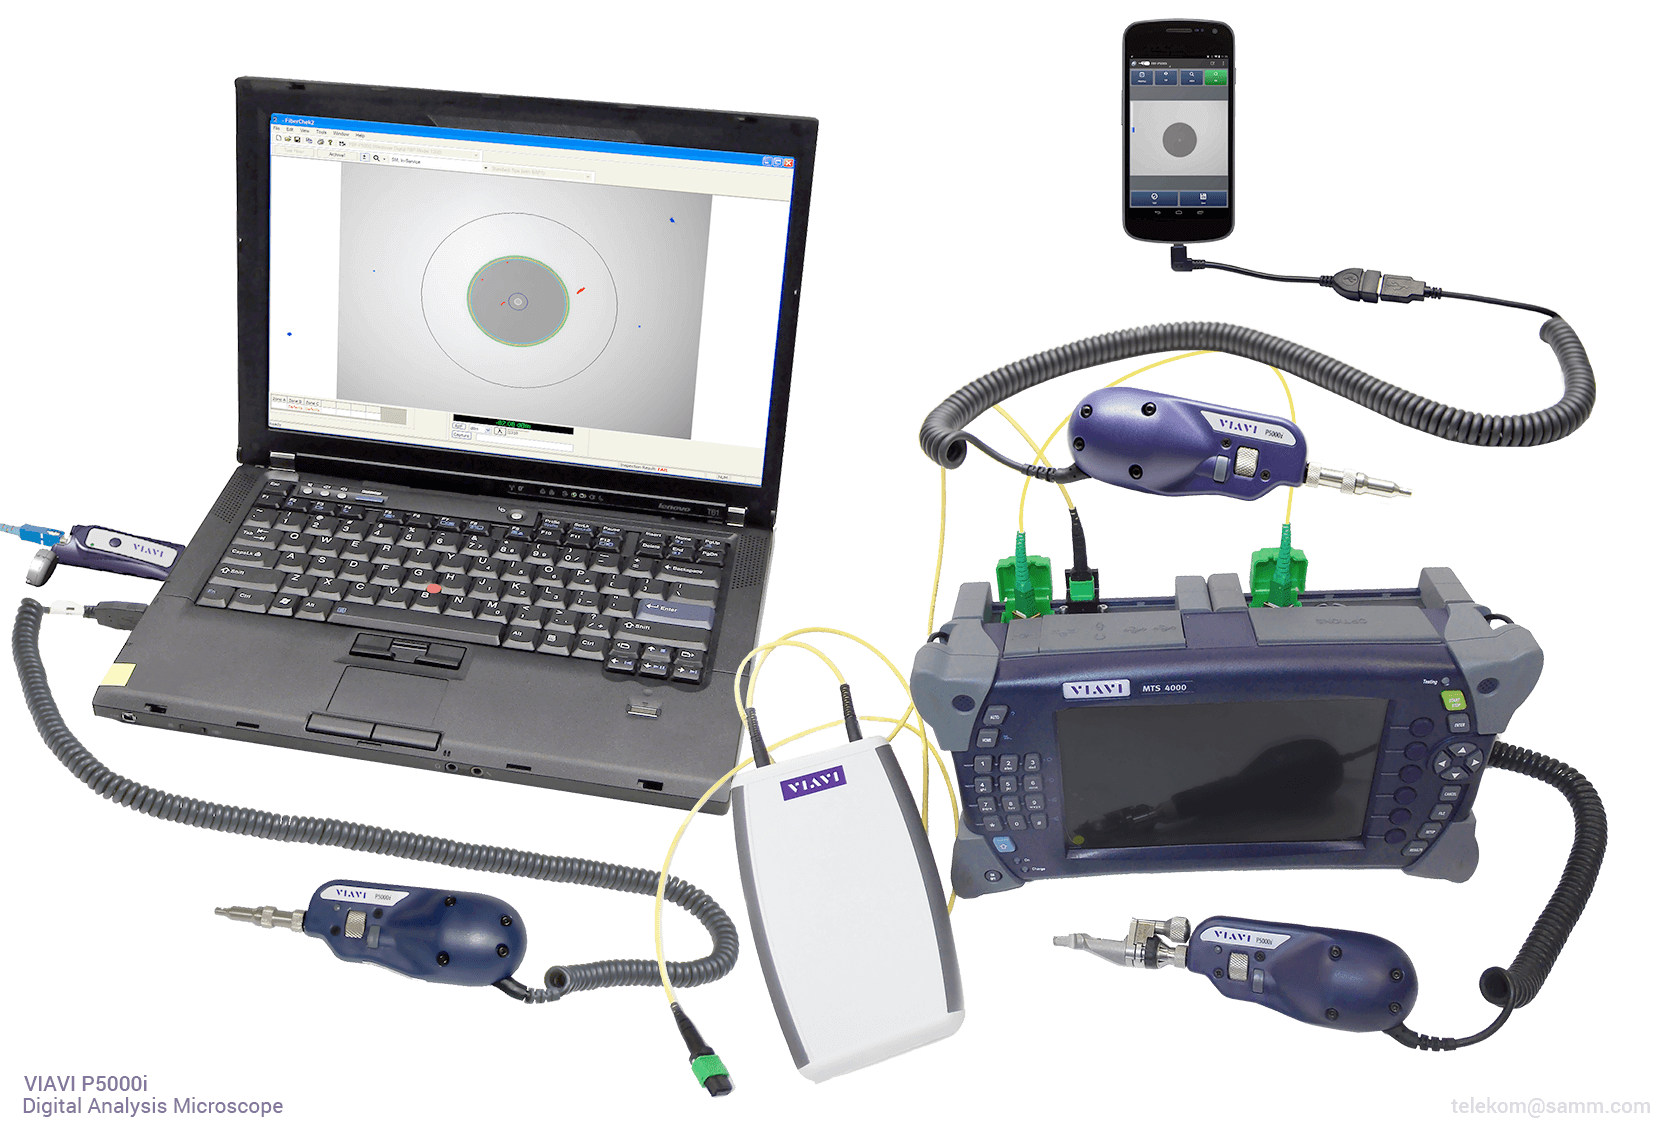 VIAVI P5000i | Connects via USB with multiple devices including Viavi tools, laptops/PCs, and Android mobile devices